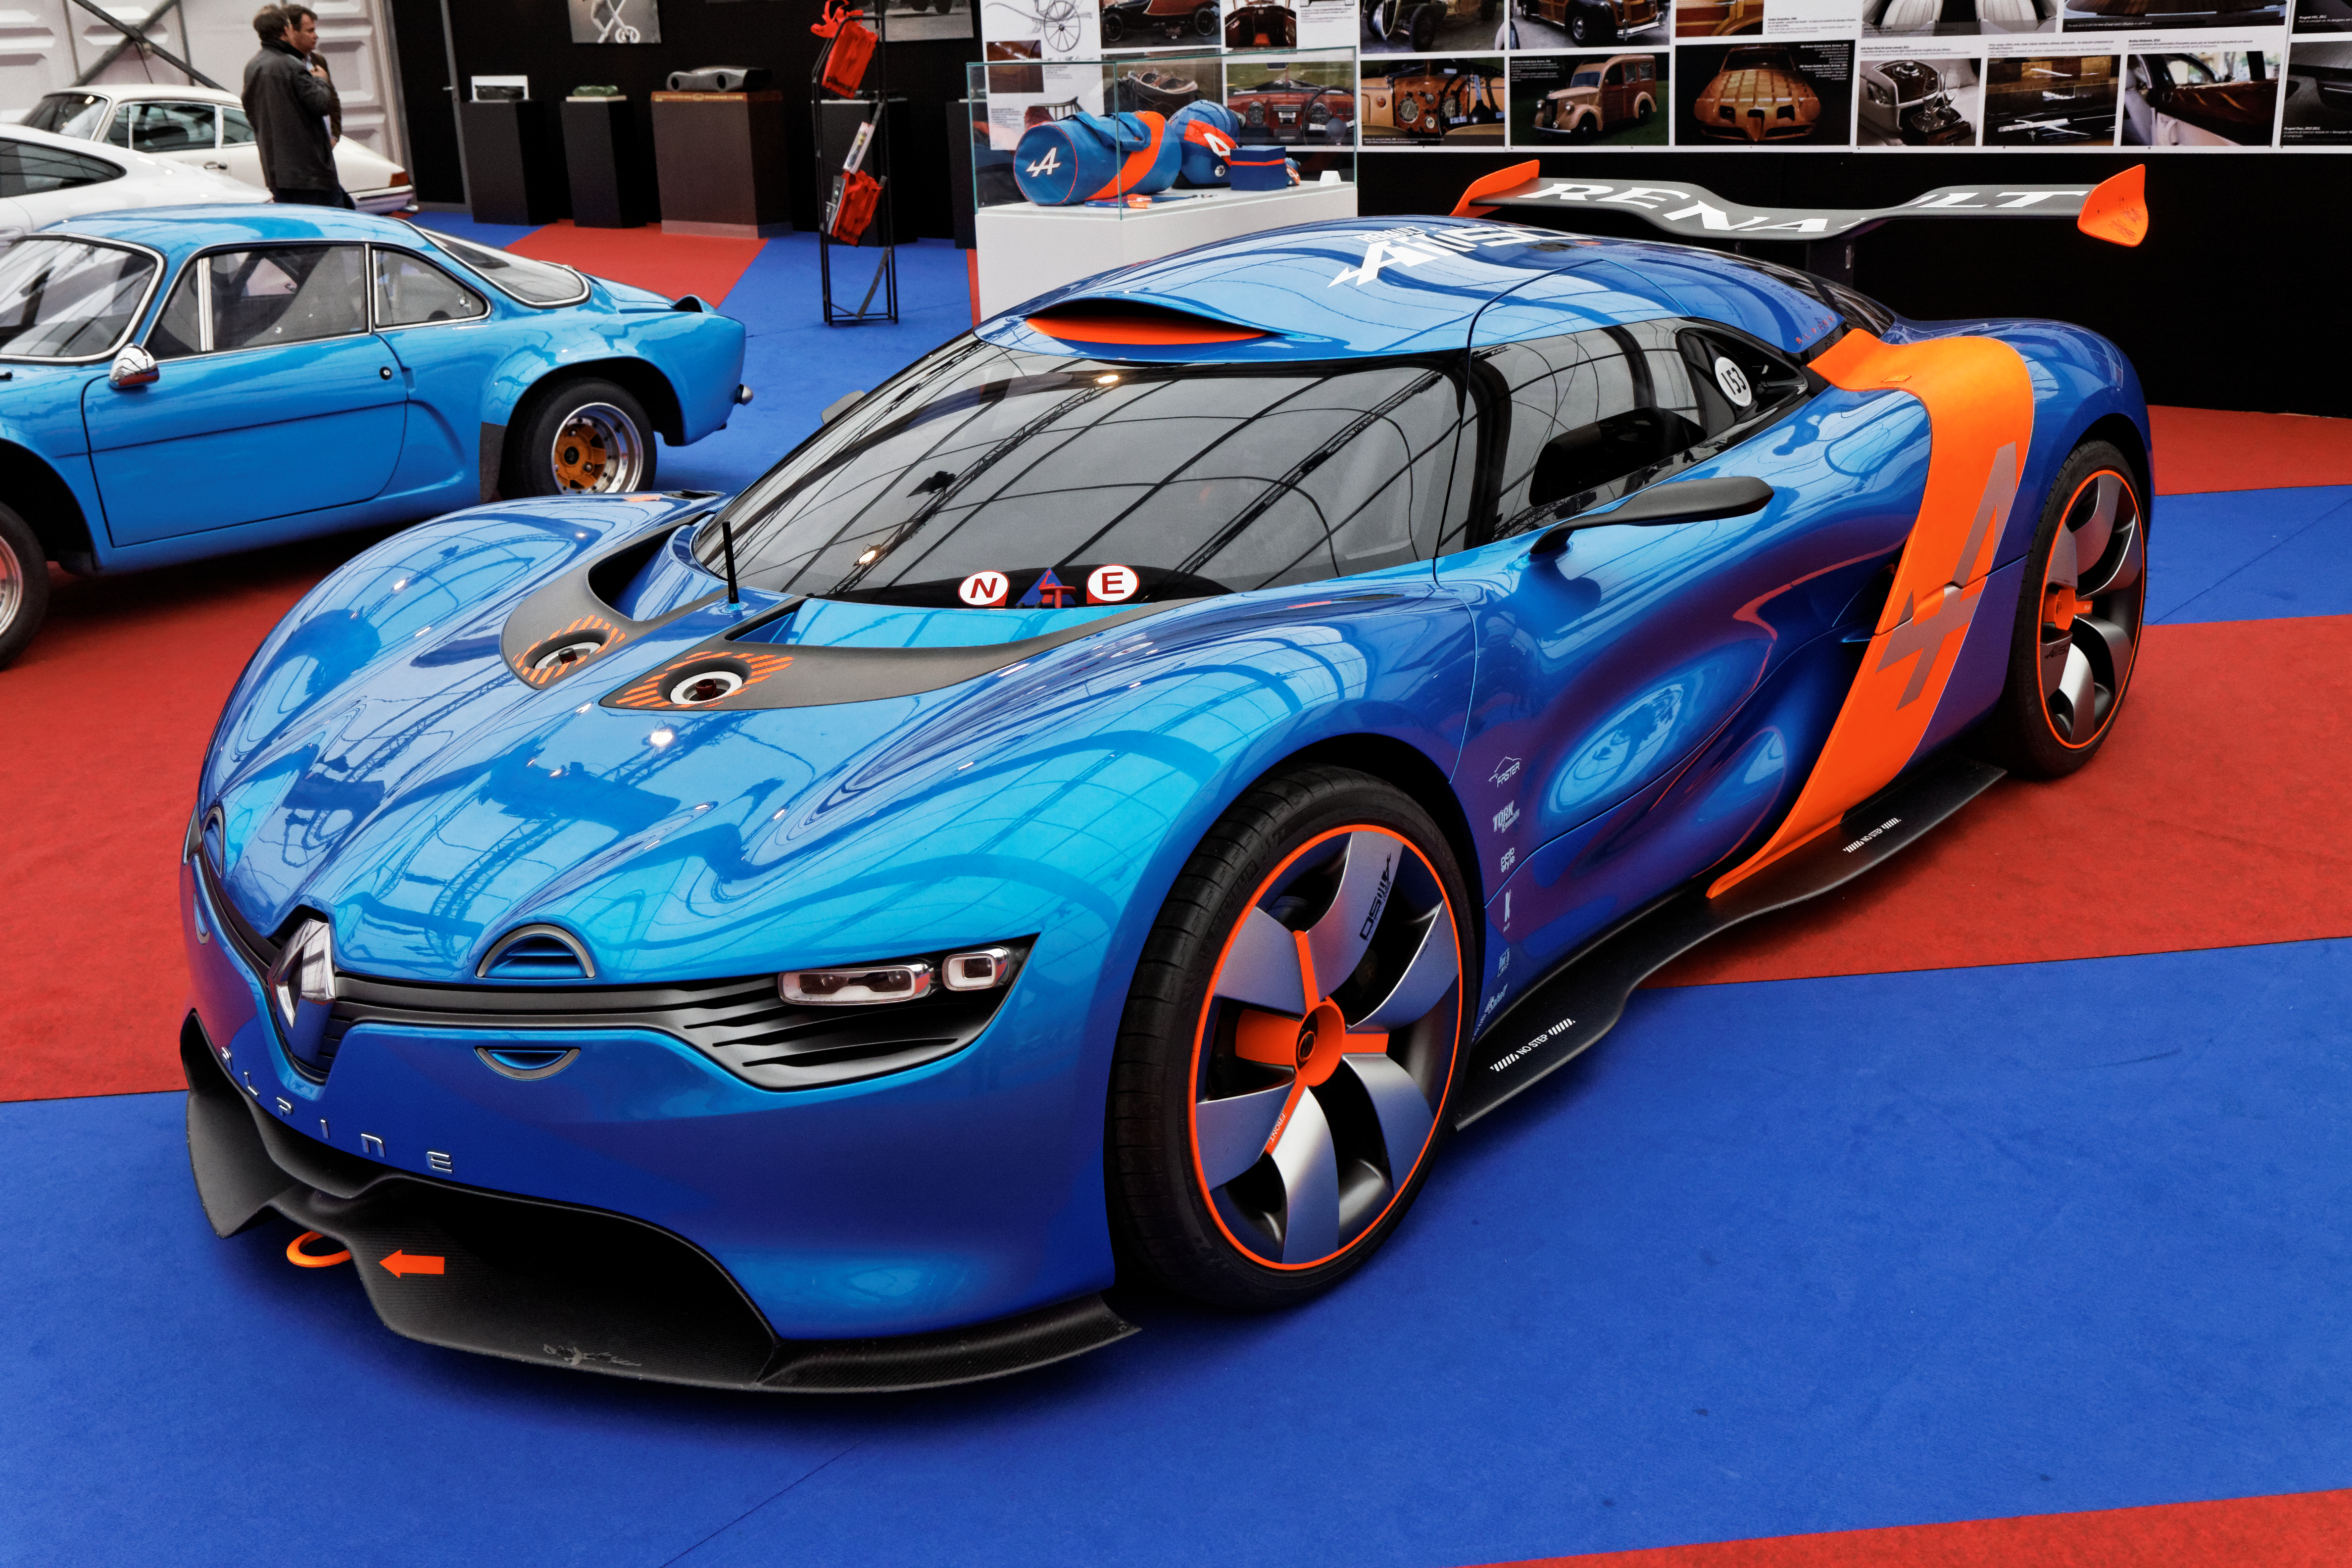 alpine a110 cars news videos images websites wiki lookingthis com. Black Bedroom Furniture Sets. Home Design Ideas